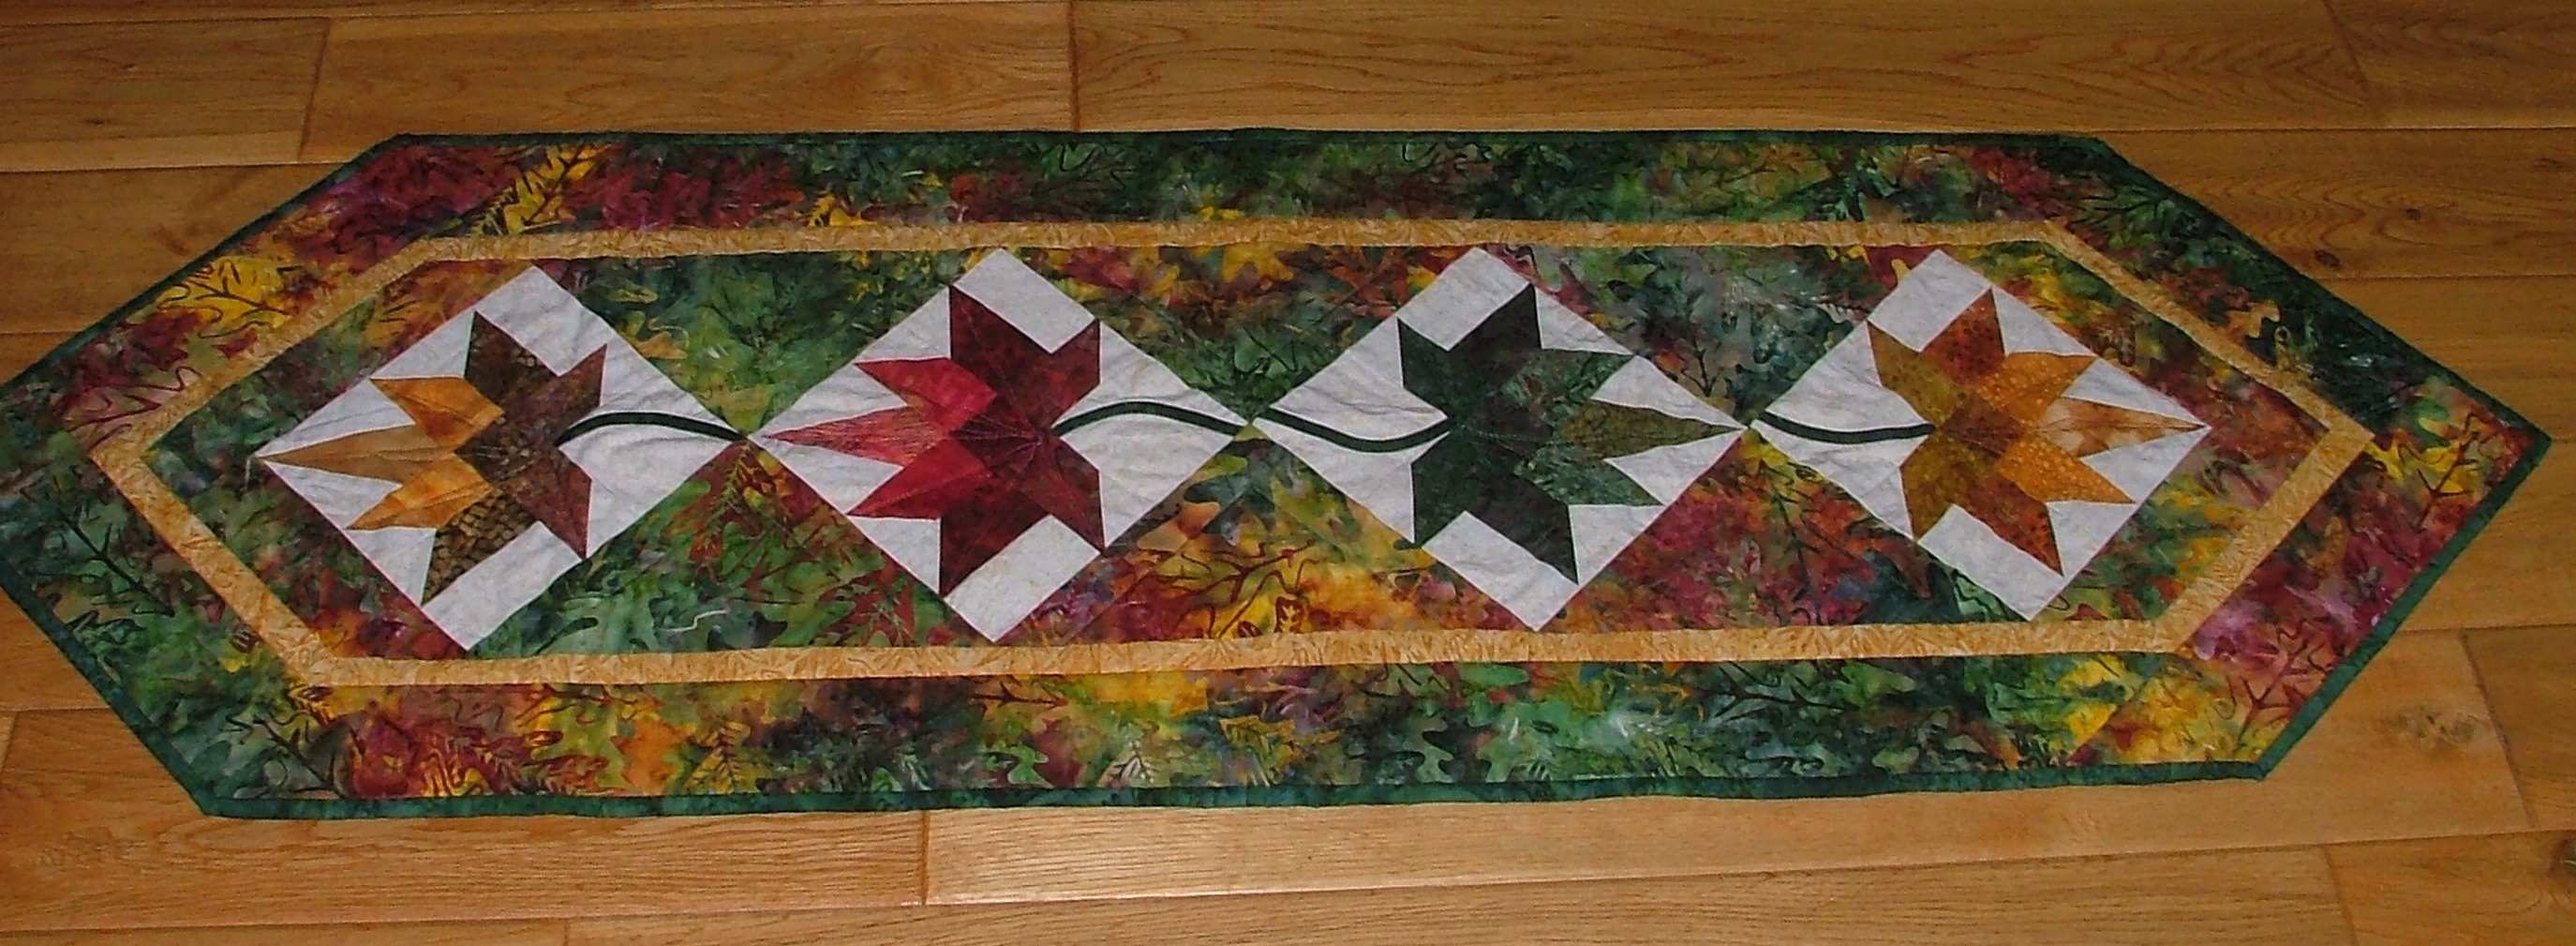 Upcoming Events 187 Maple Leaf Table Runner Portsmouth